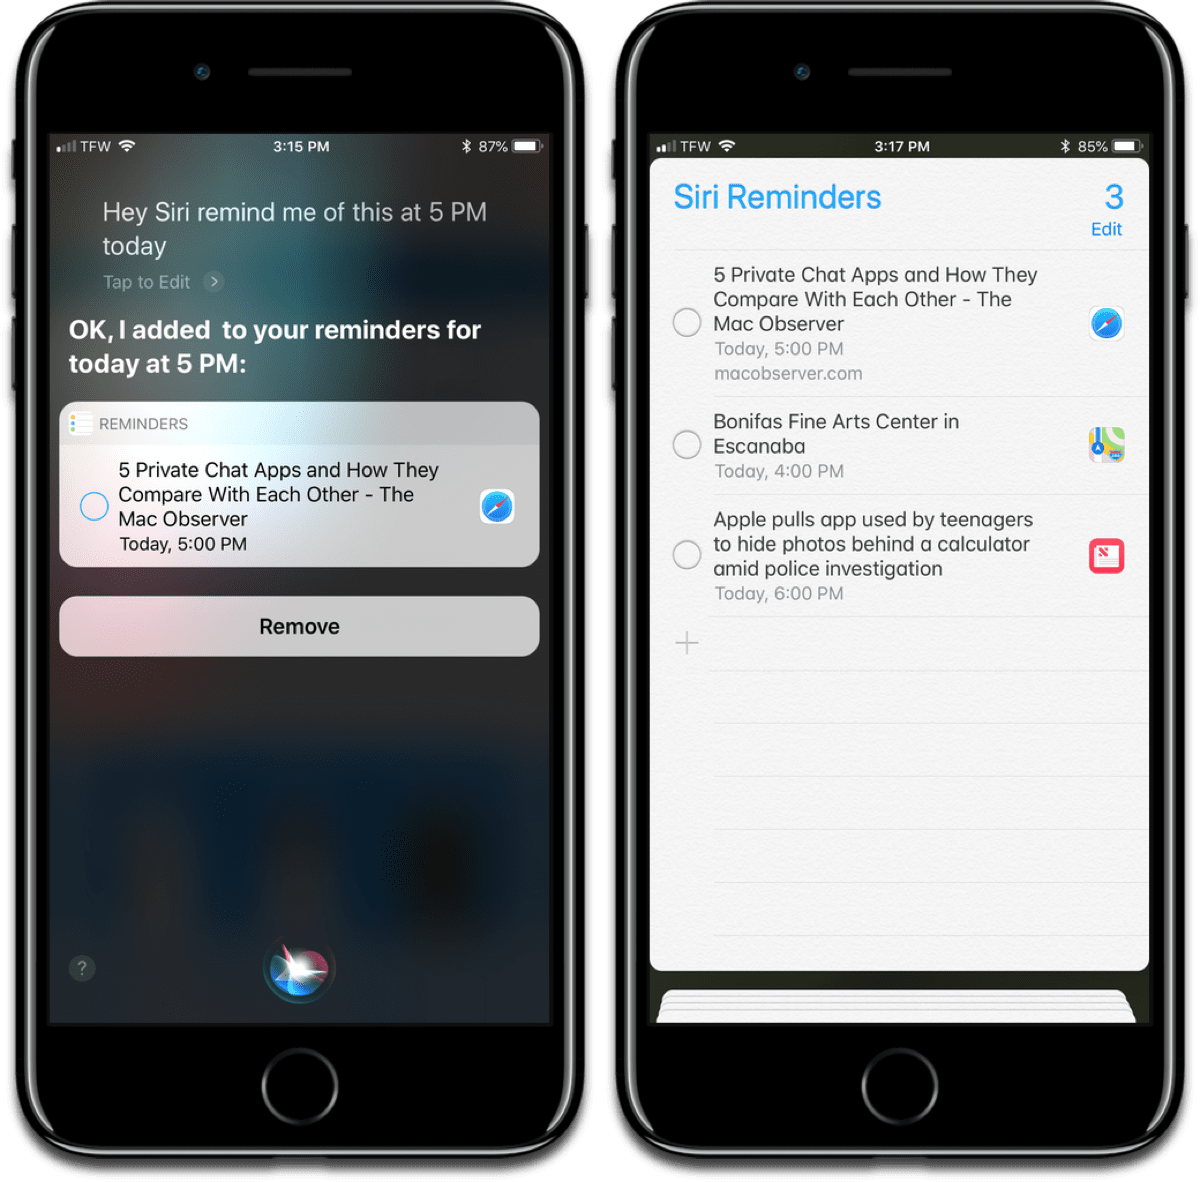 Former Google AI chief has control of Siri now, as pictured here.